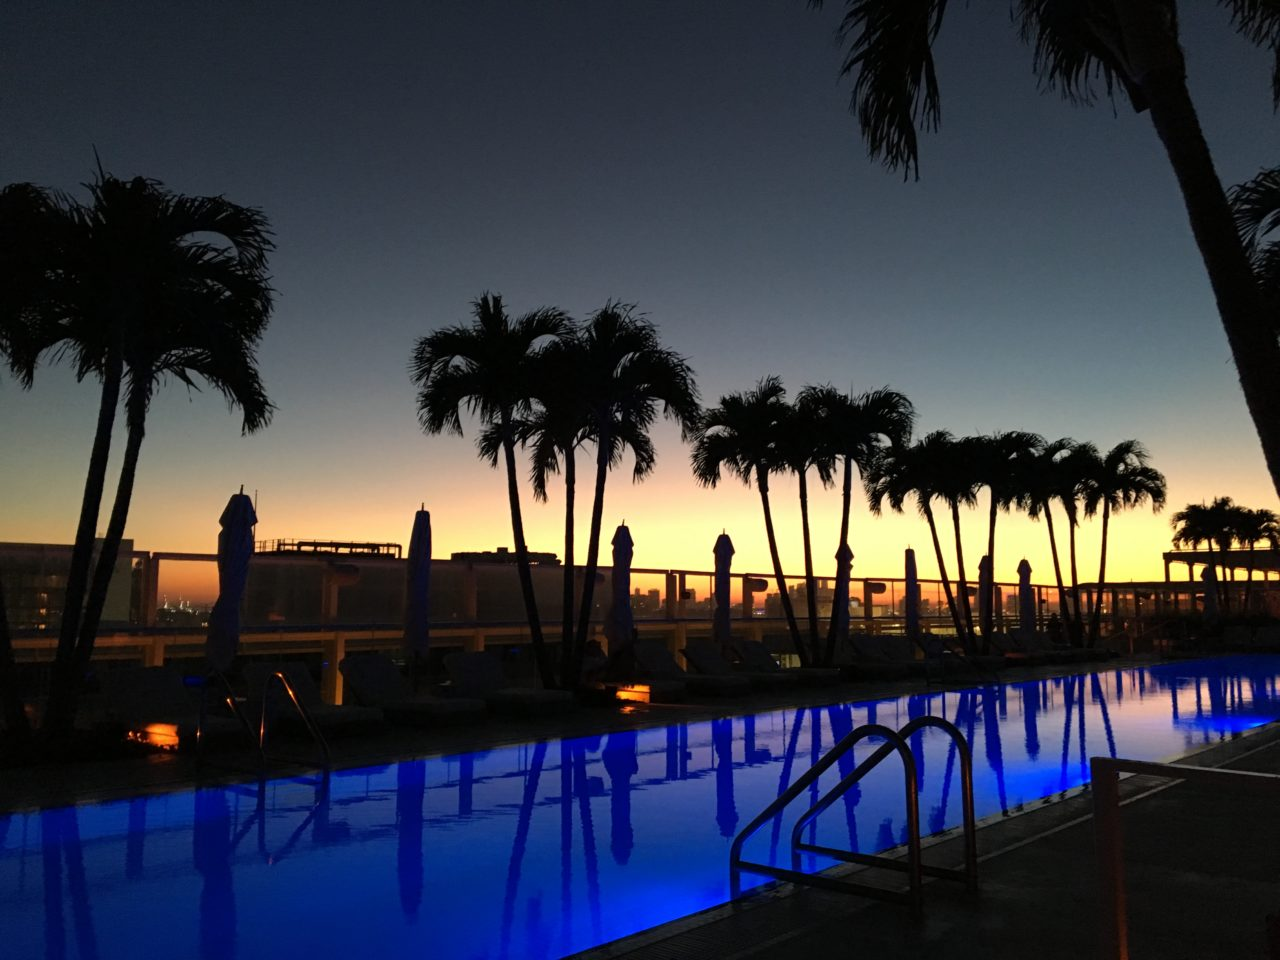 Rooftop Sunset, South Beach, Miami – Most Beautiful Picture